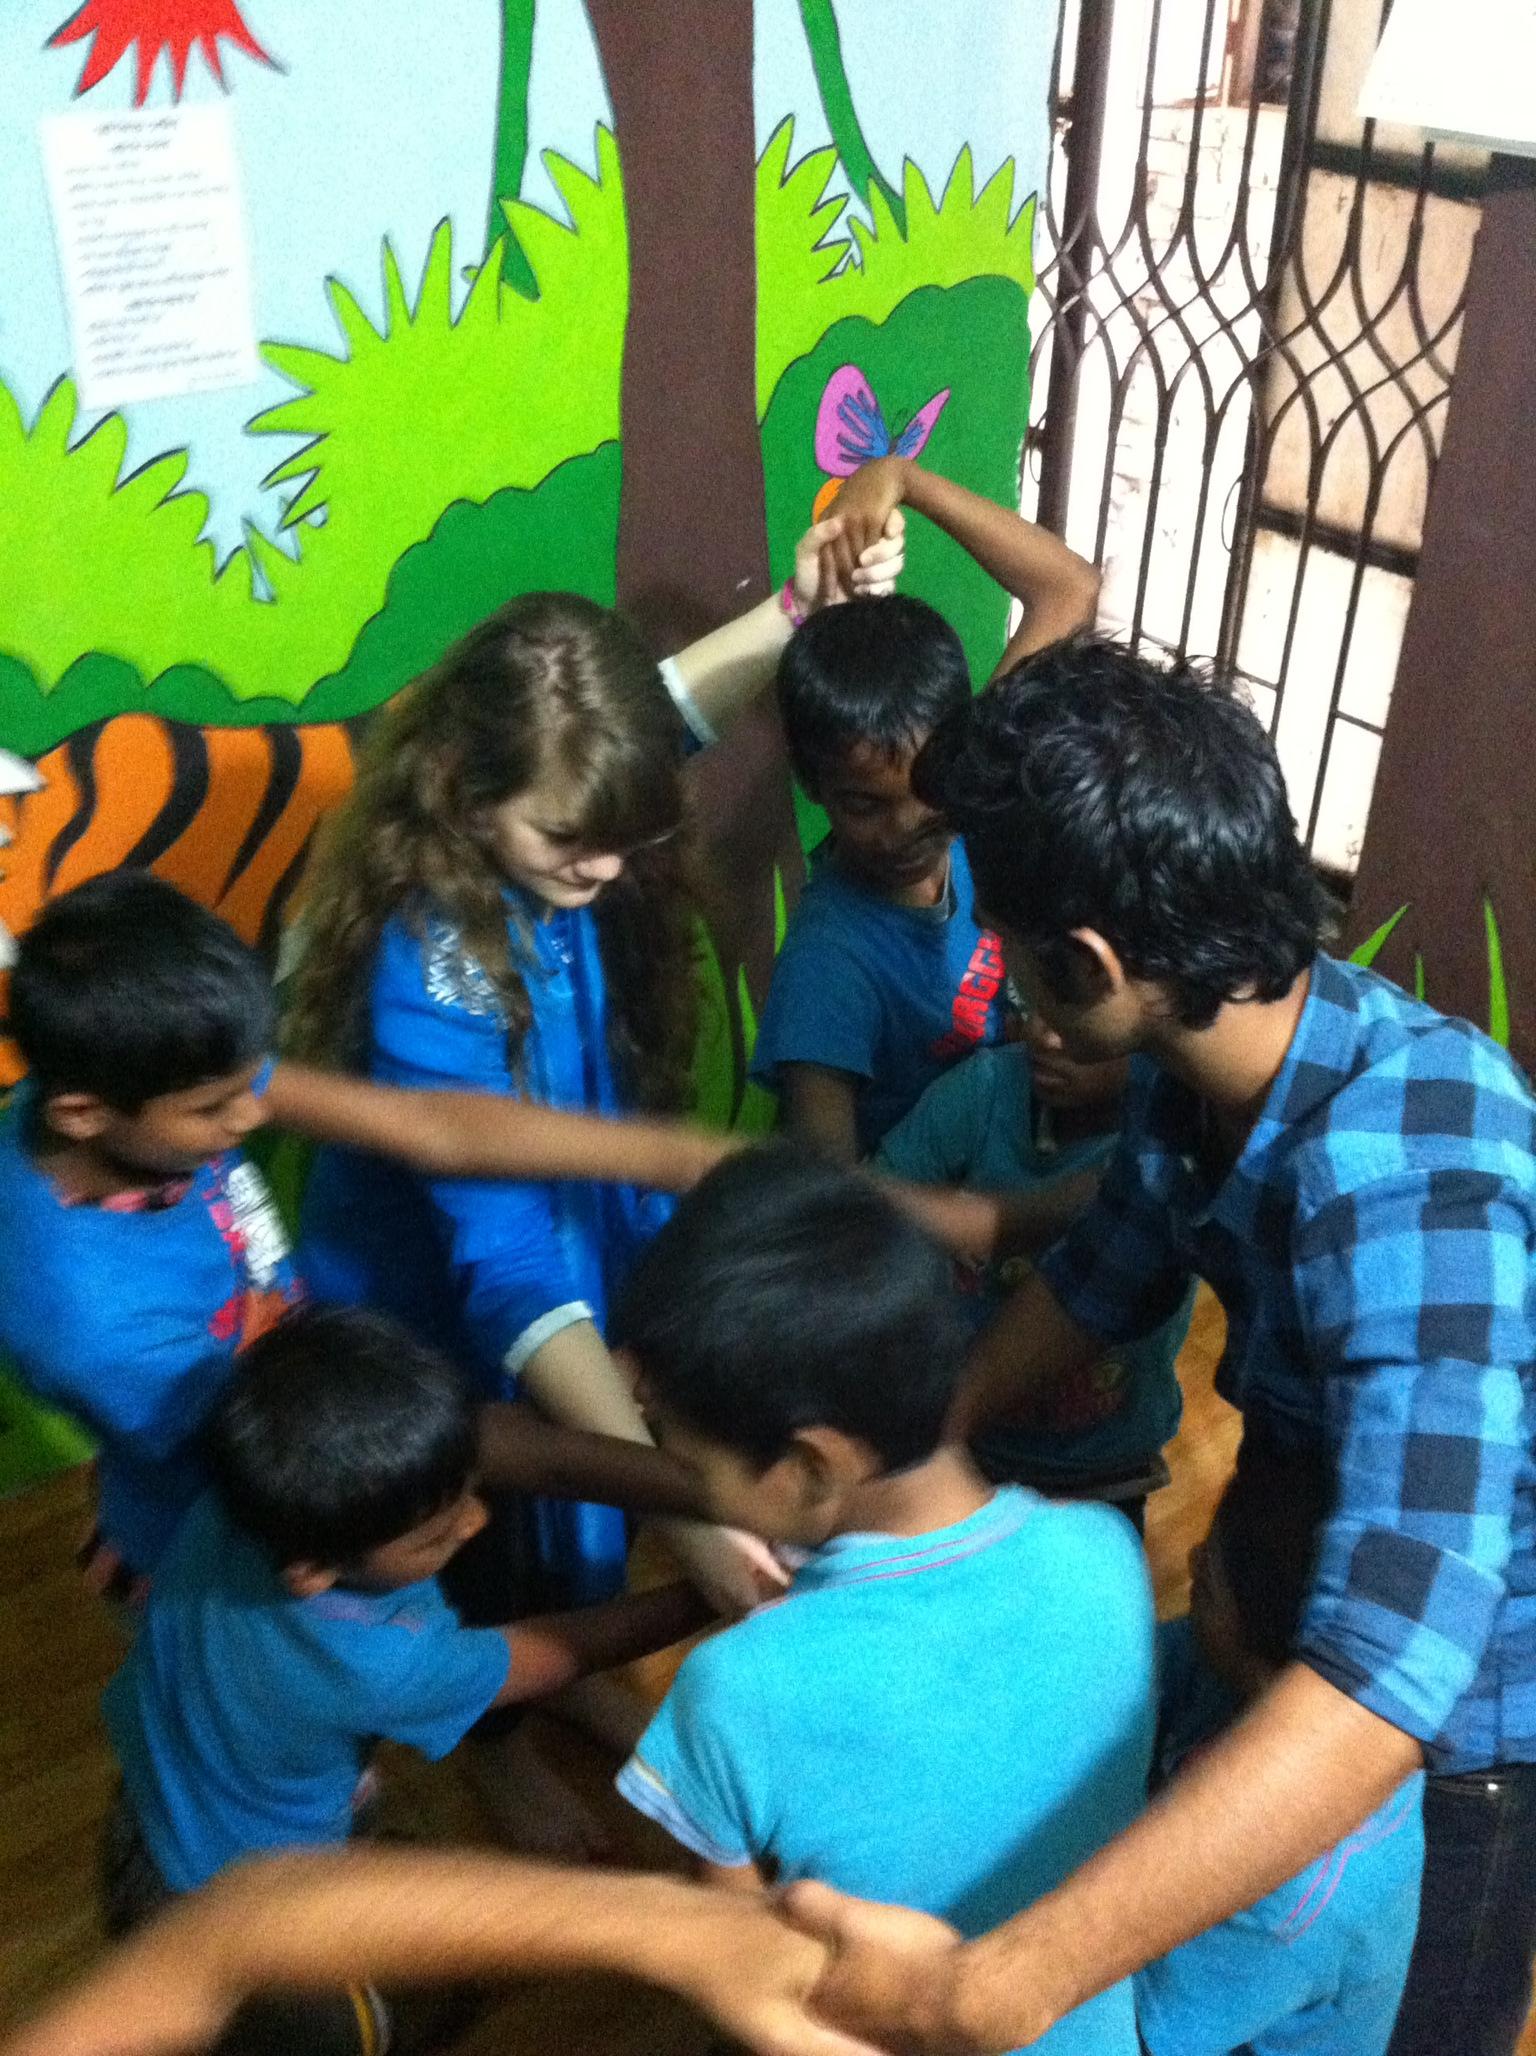 Playing a game of 'Human Knot' at the Smart Kids Center